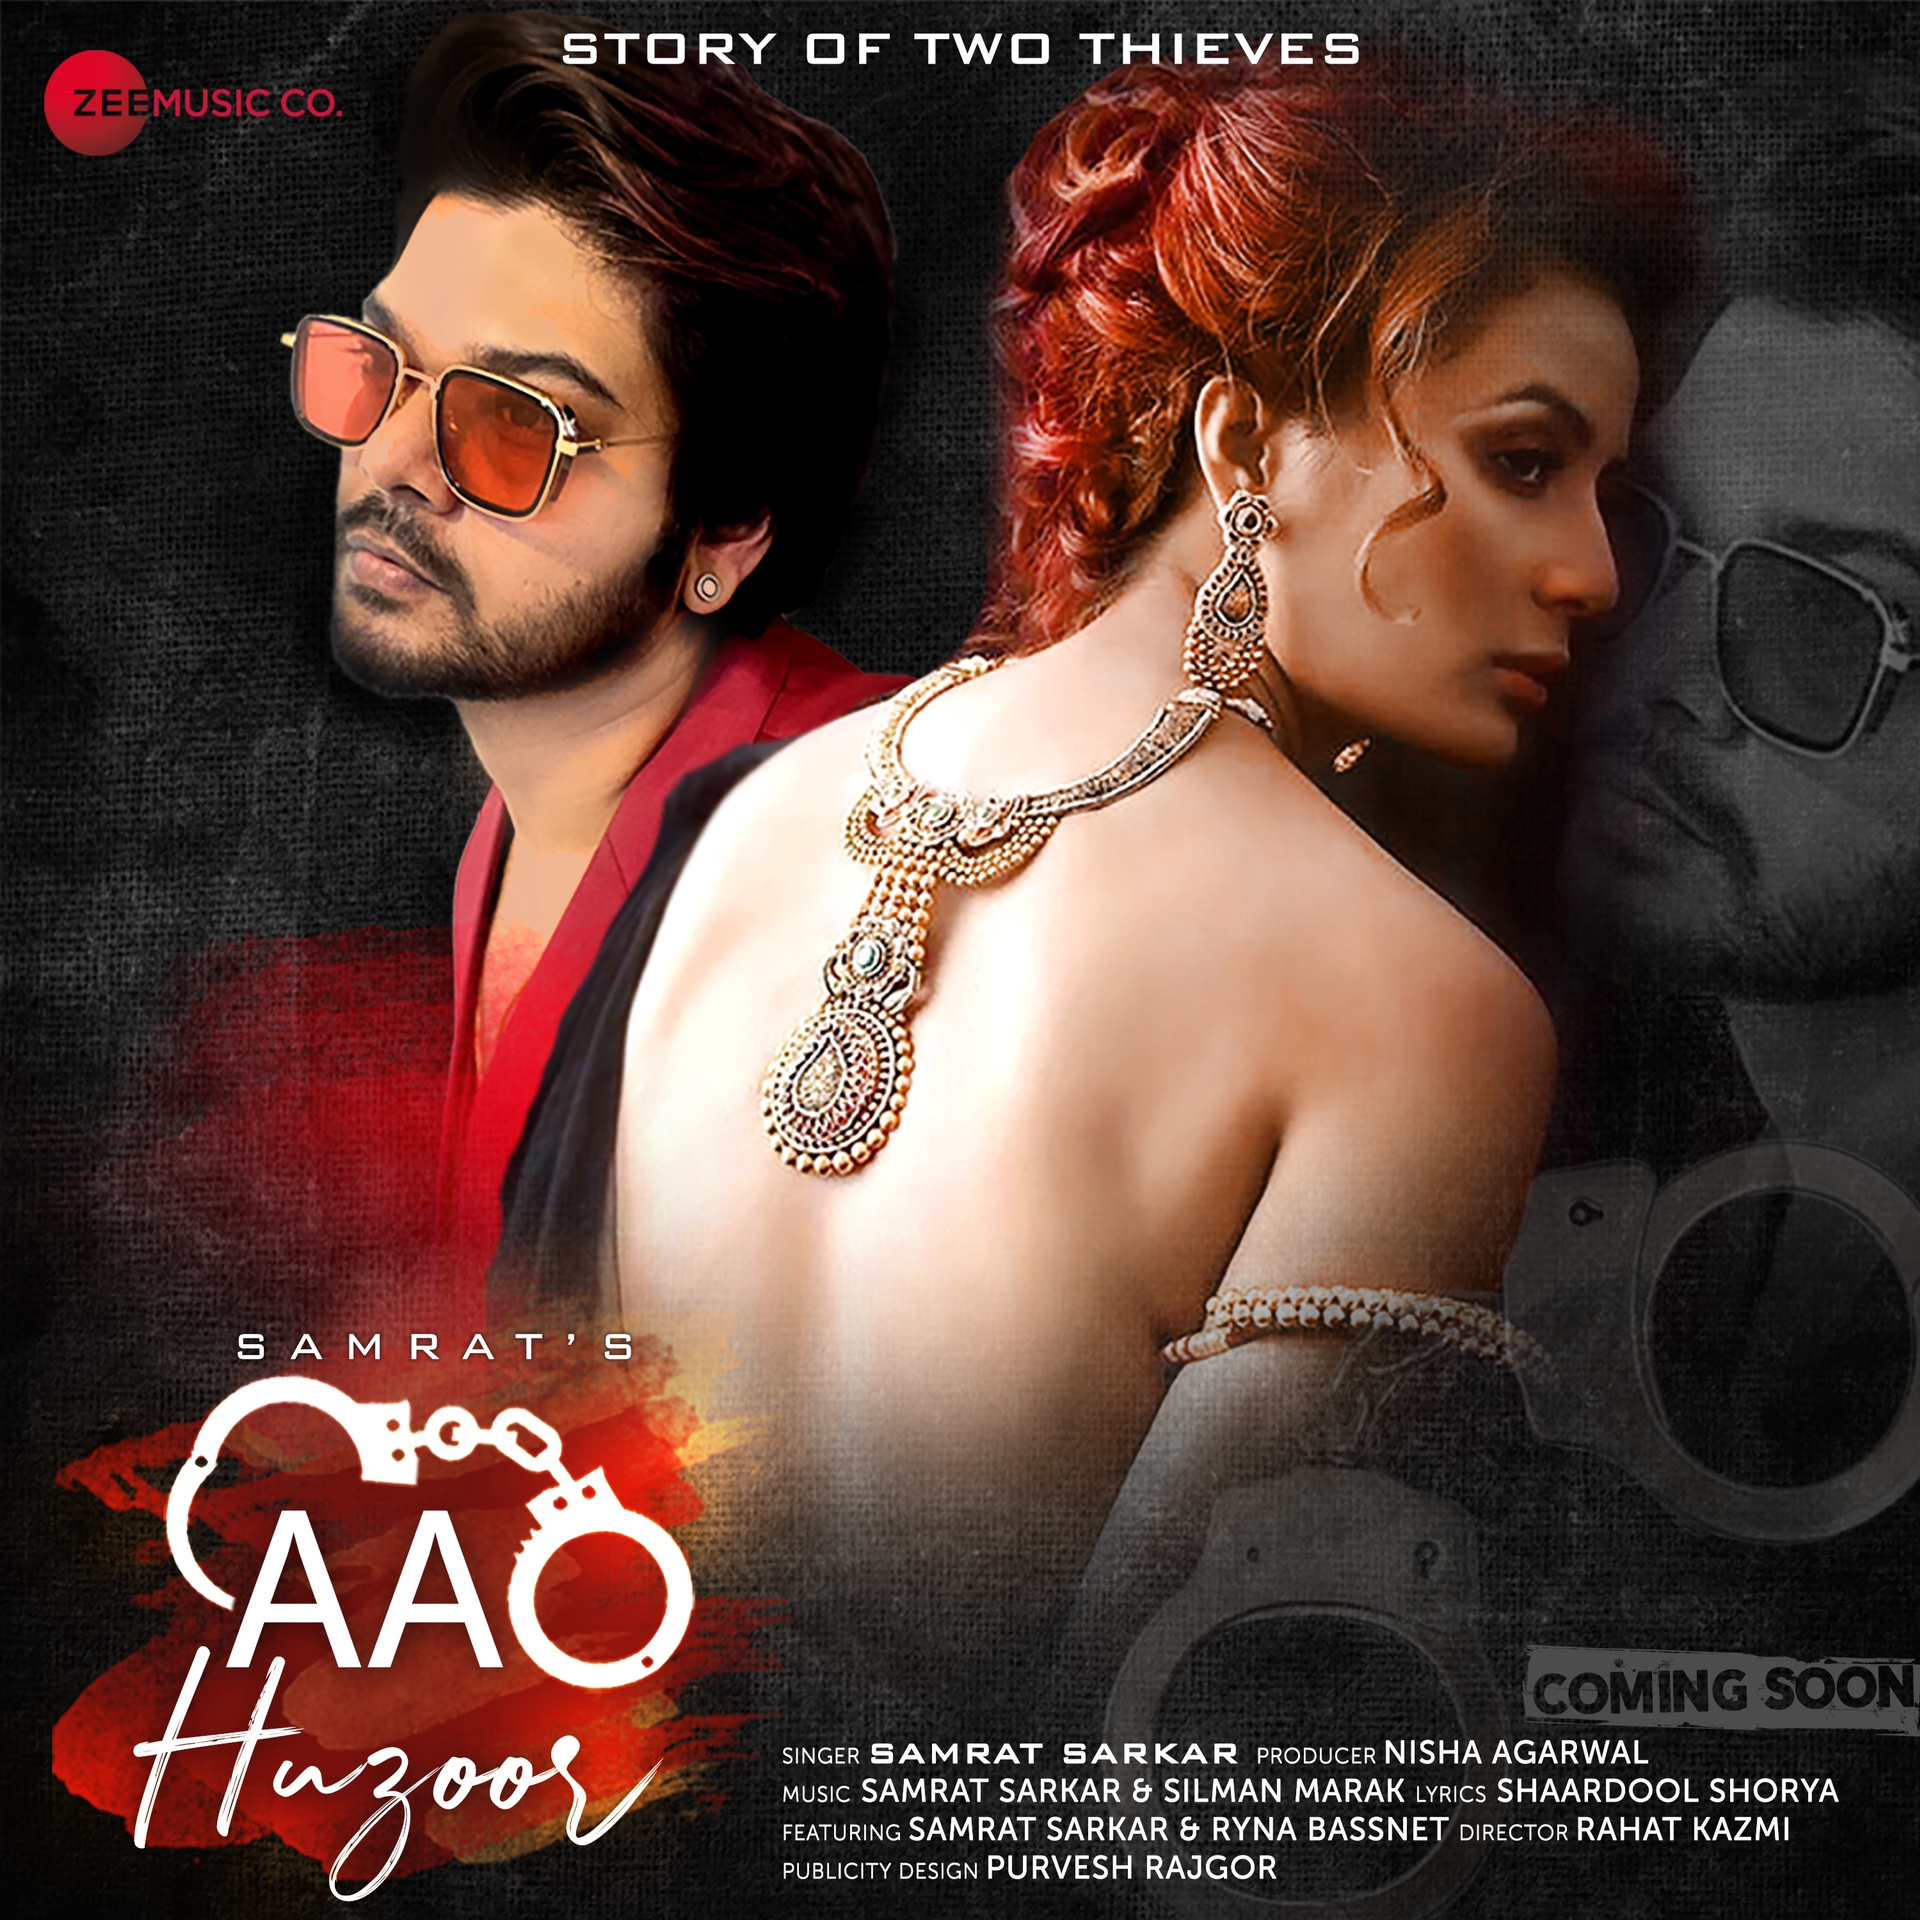 Aao Huzoor By Samrat Sarkar Official Music Video 1080p HDRip 57MB Download